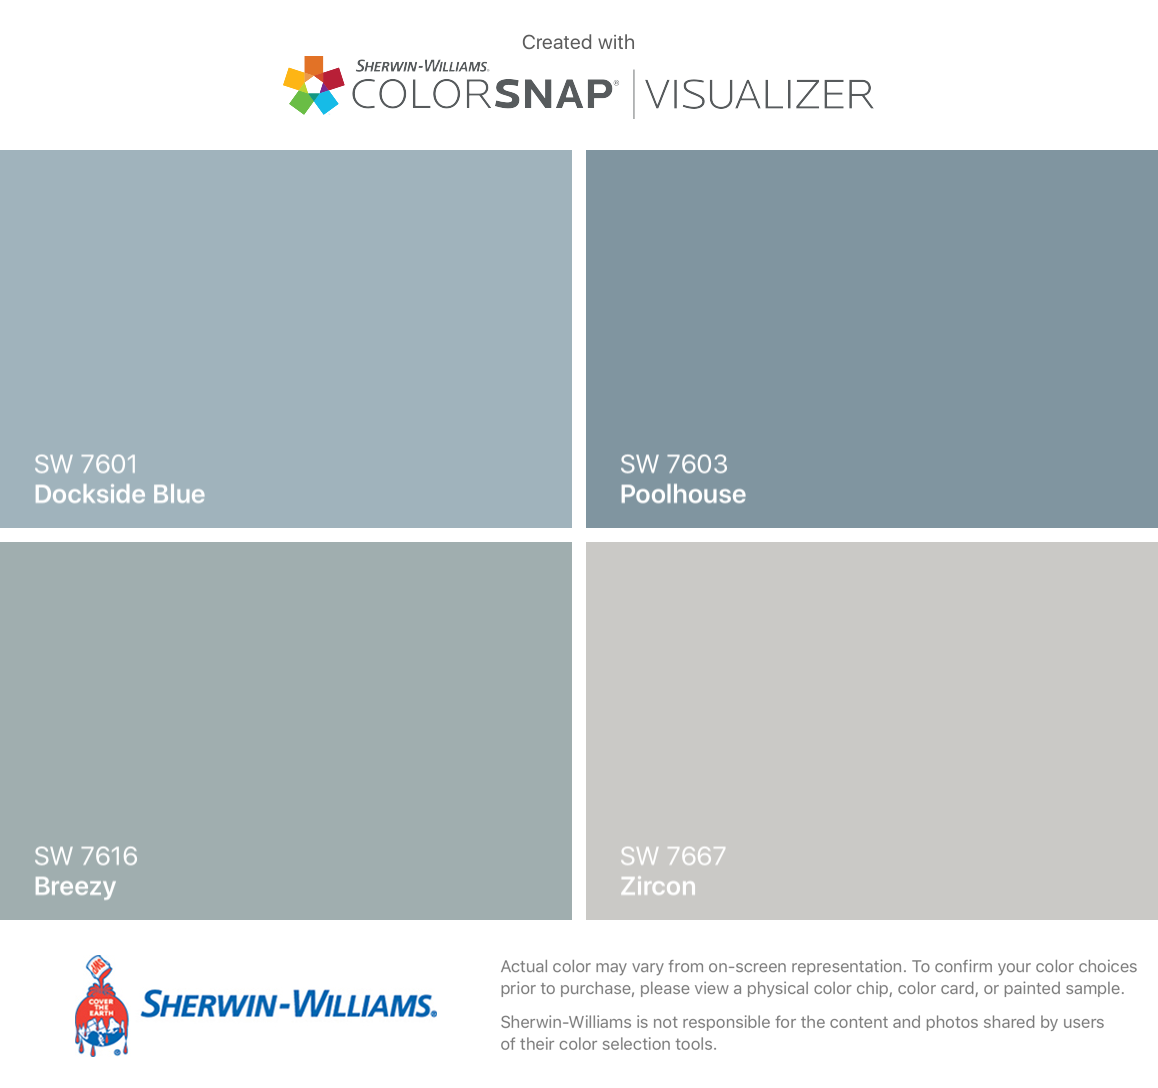 I Found These Colors With Colorsnap Visualizer For Iphone By Sherwin Williams Dockside Blue Exterior House Colors House Paint Exterior Paint Colors For Home